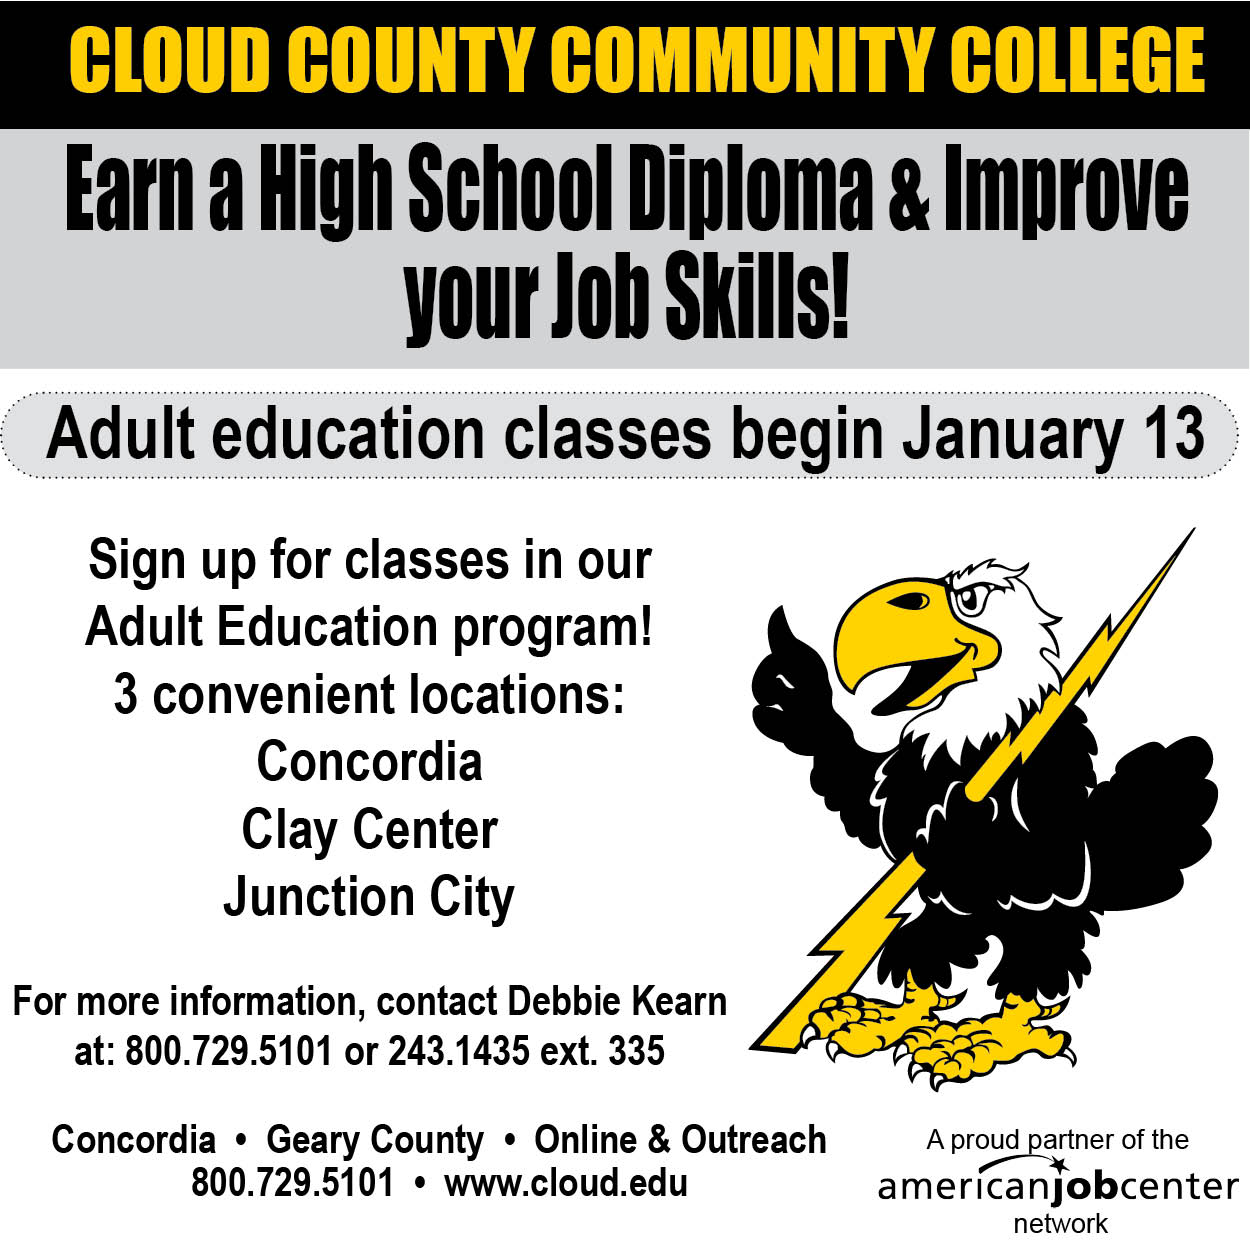 Courses to be offered in the Adult Education program.